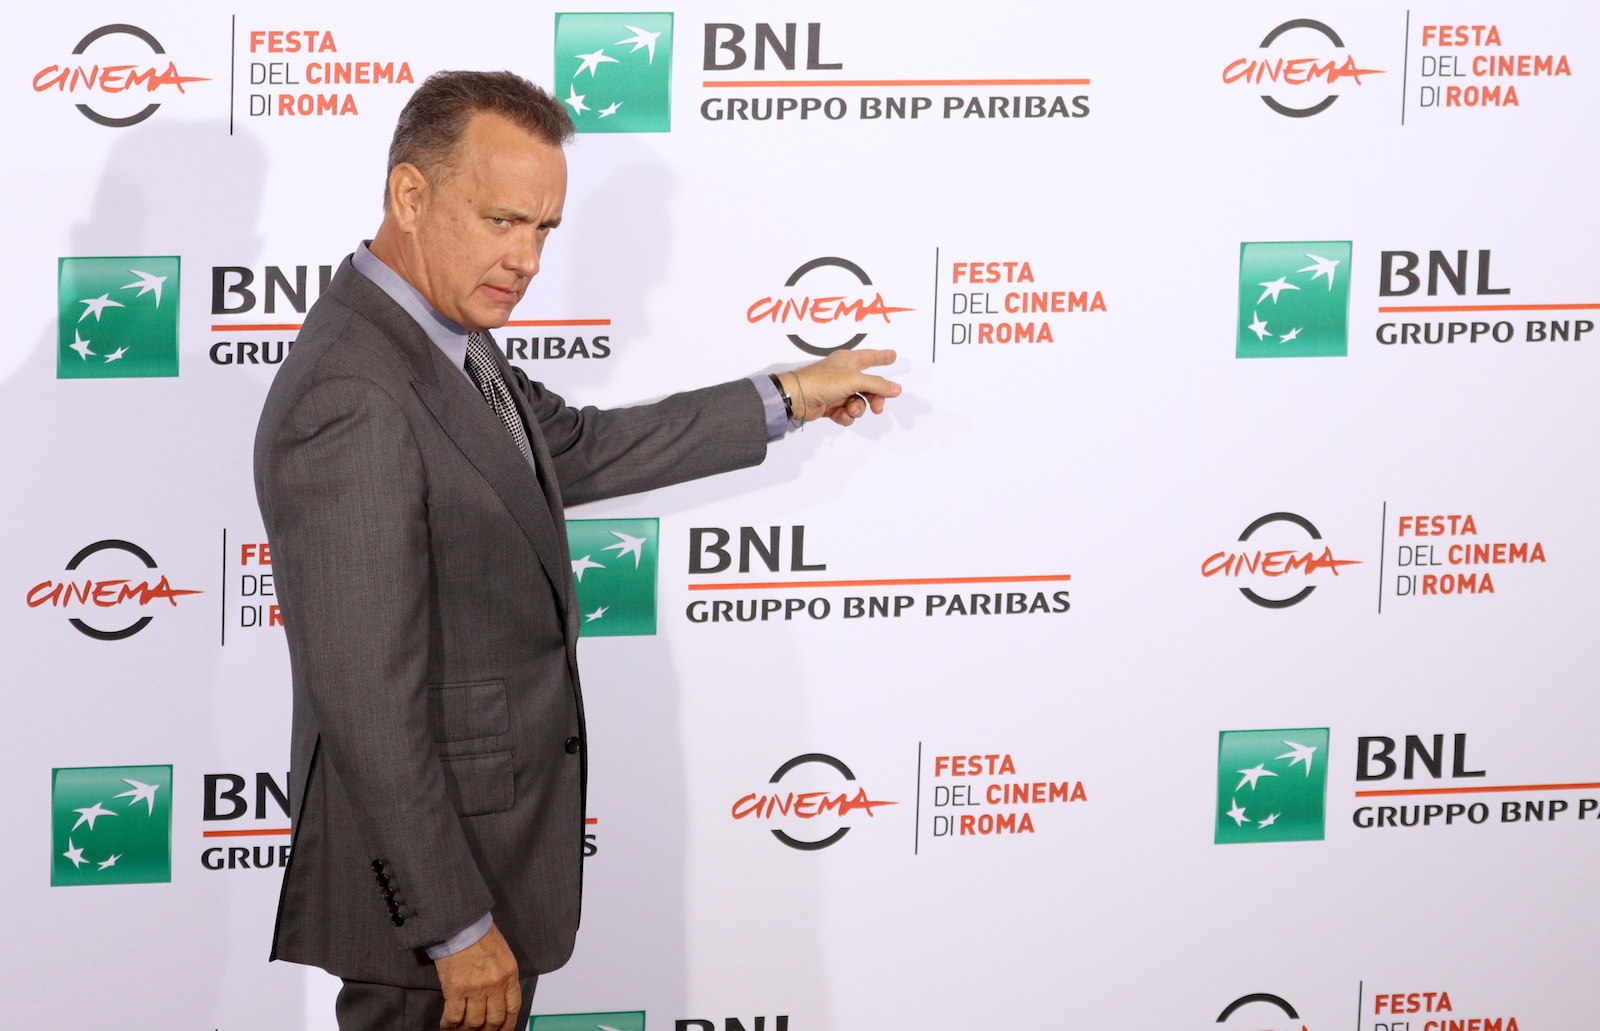 Roma 2016: Tom Hanks entra al photocall